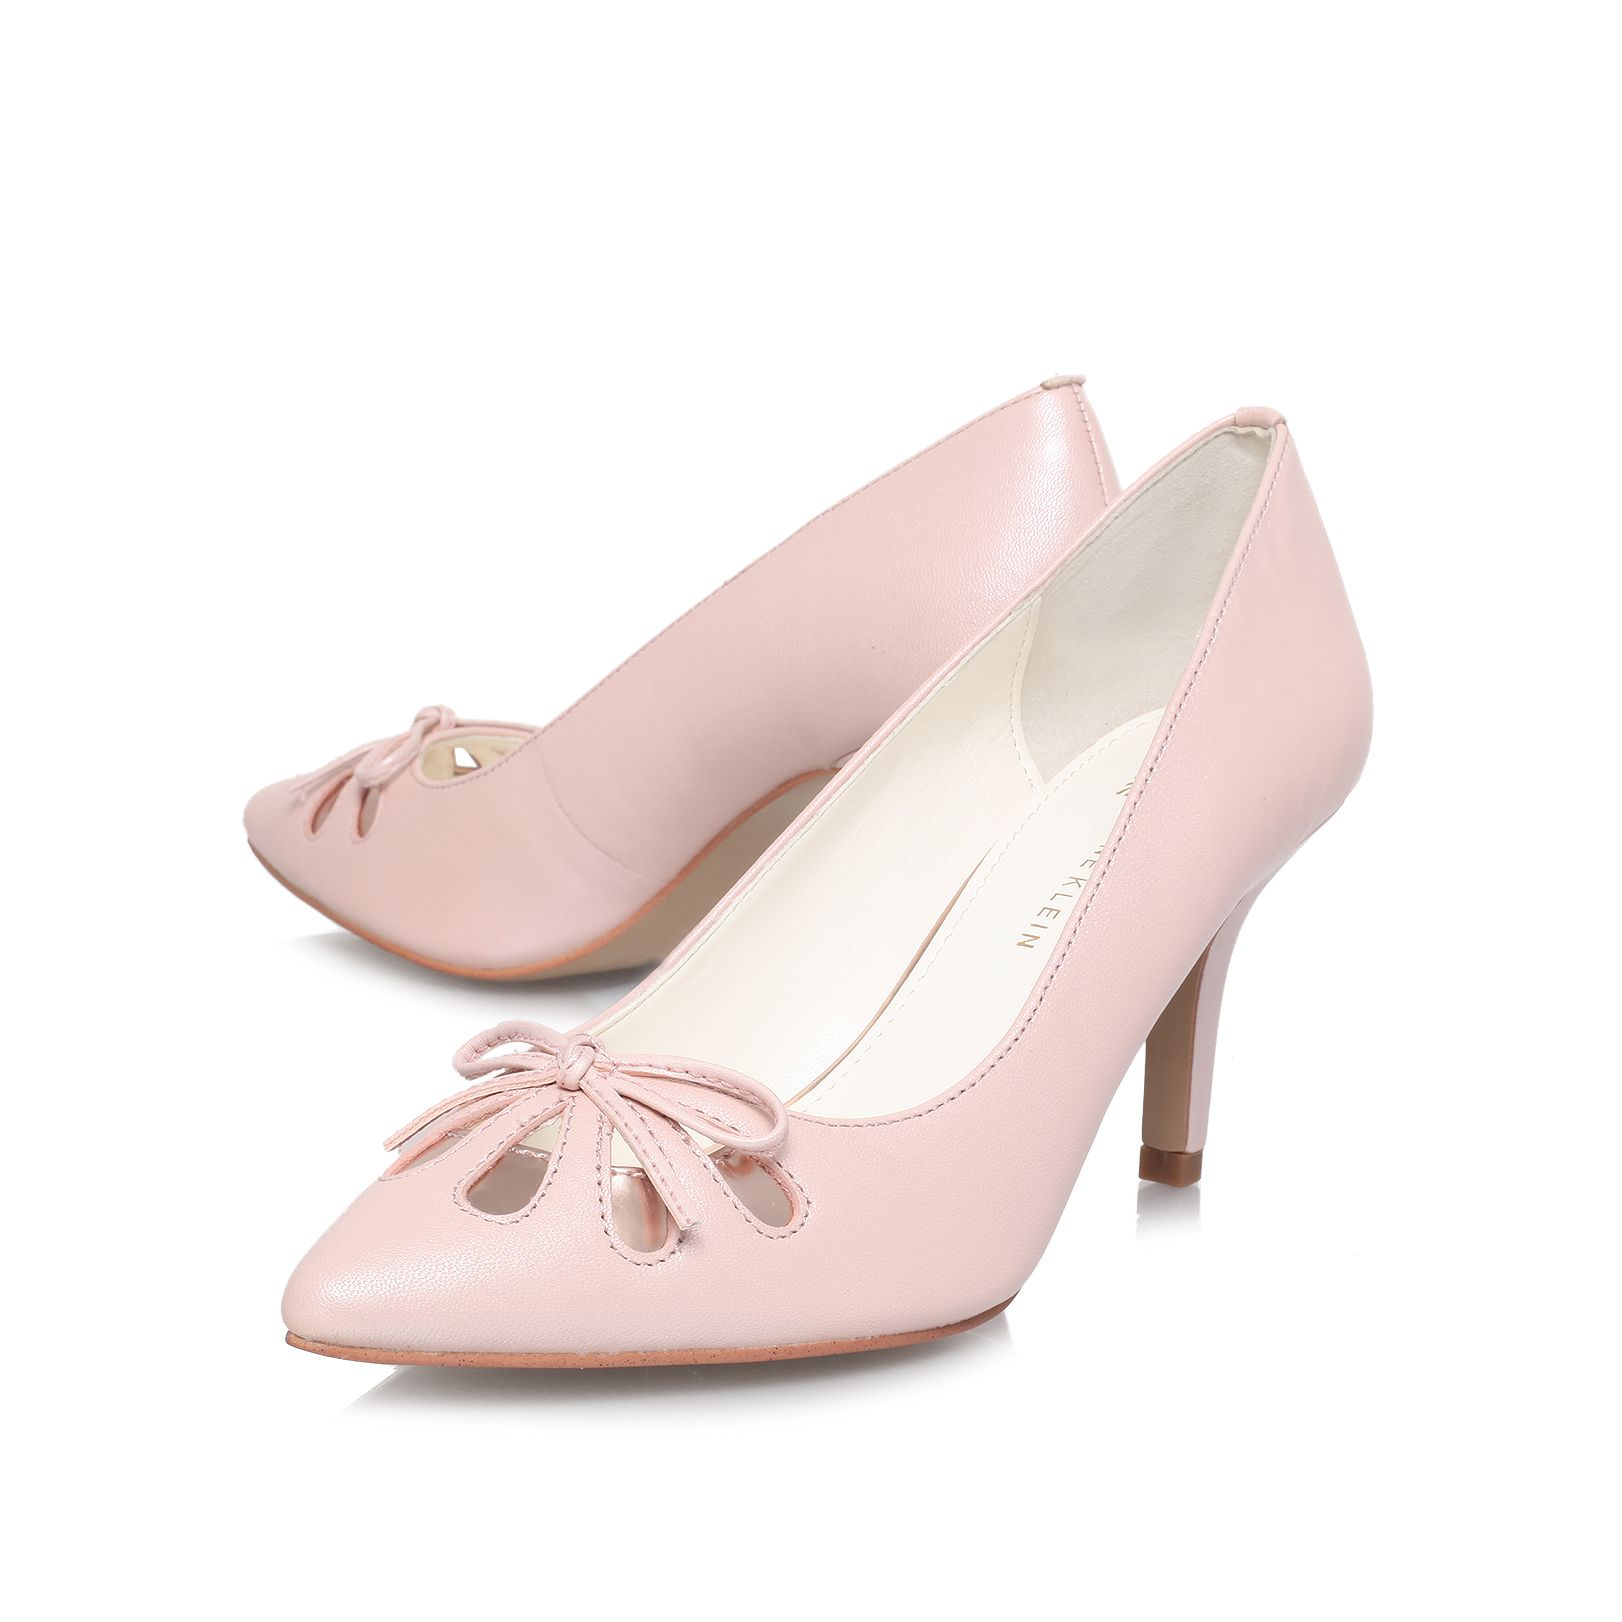 Yasmeen low heeled court shoes